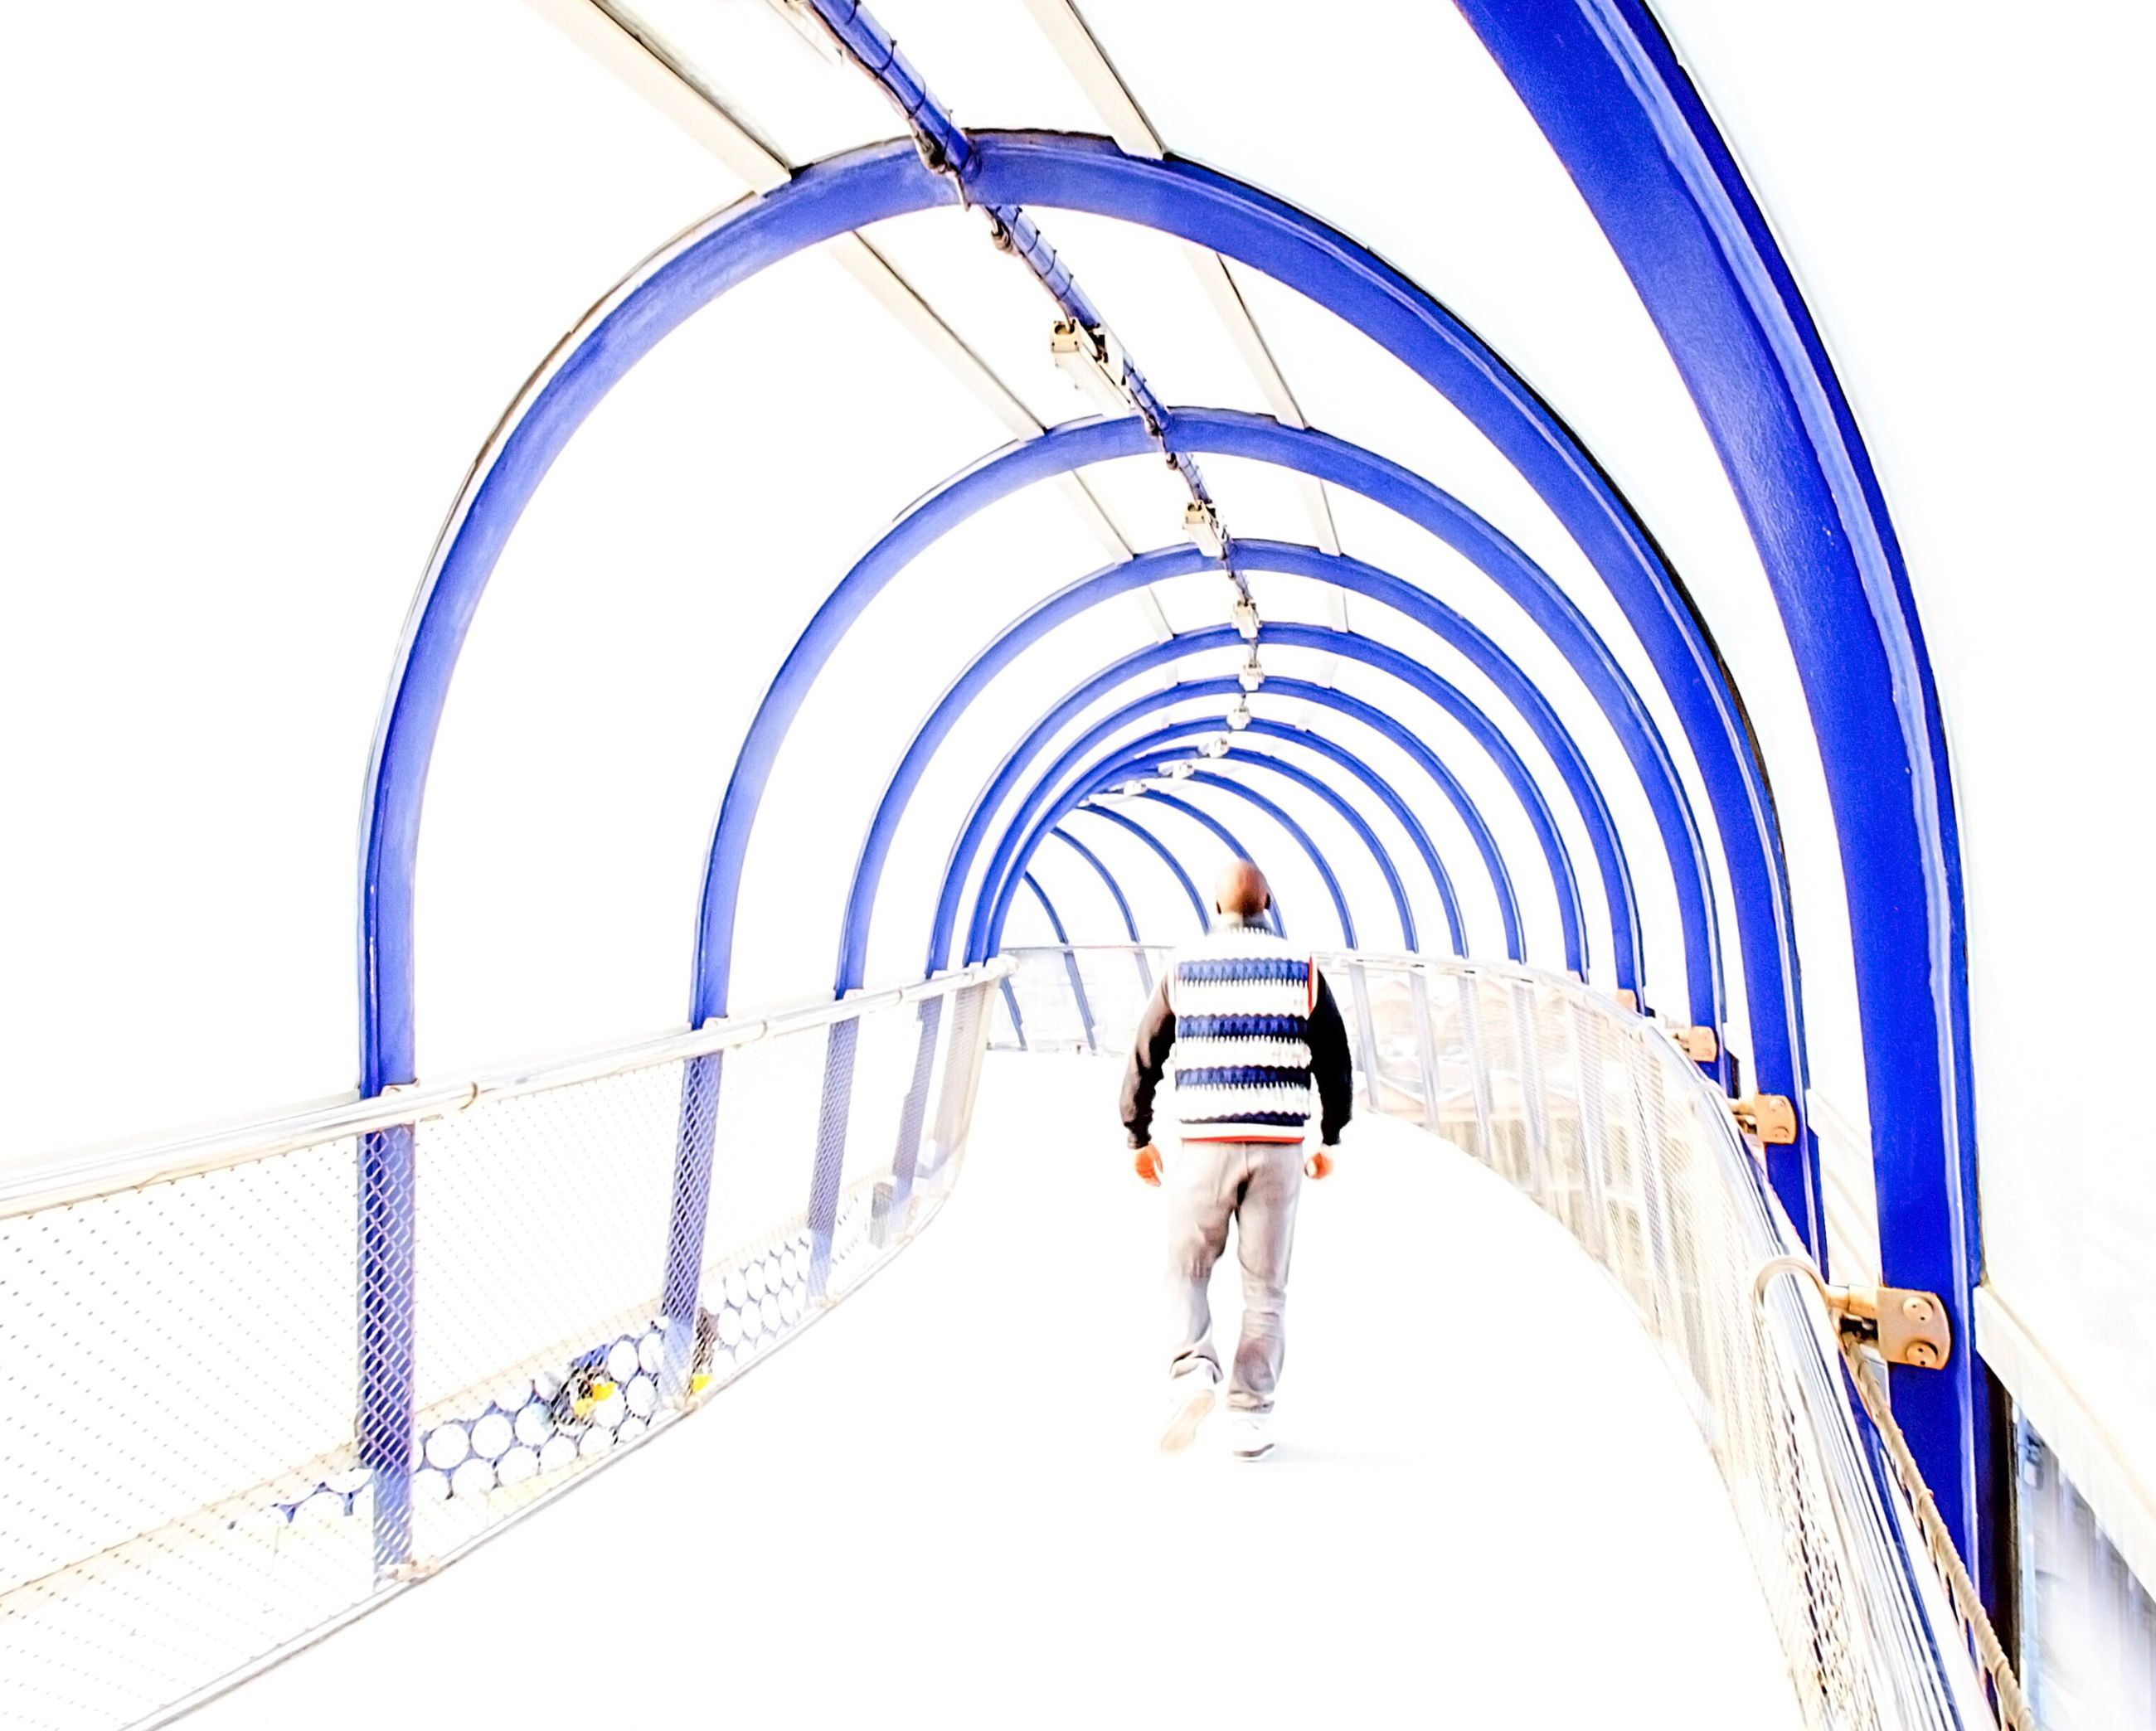 arch, built structure, architecture, railing, the way forward, connection, transportation, walking, lifestyles, men, bridge - man made structure, diminishing perspective, steps, rear view, blue, leisure activity, staircase, steps and staircases